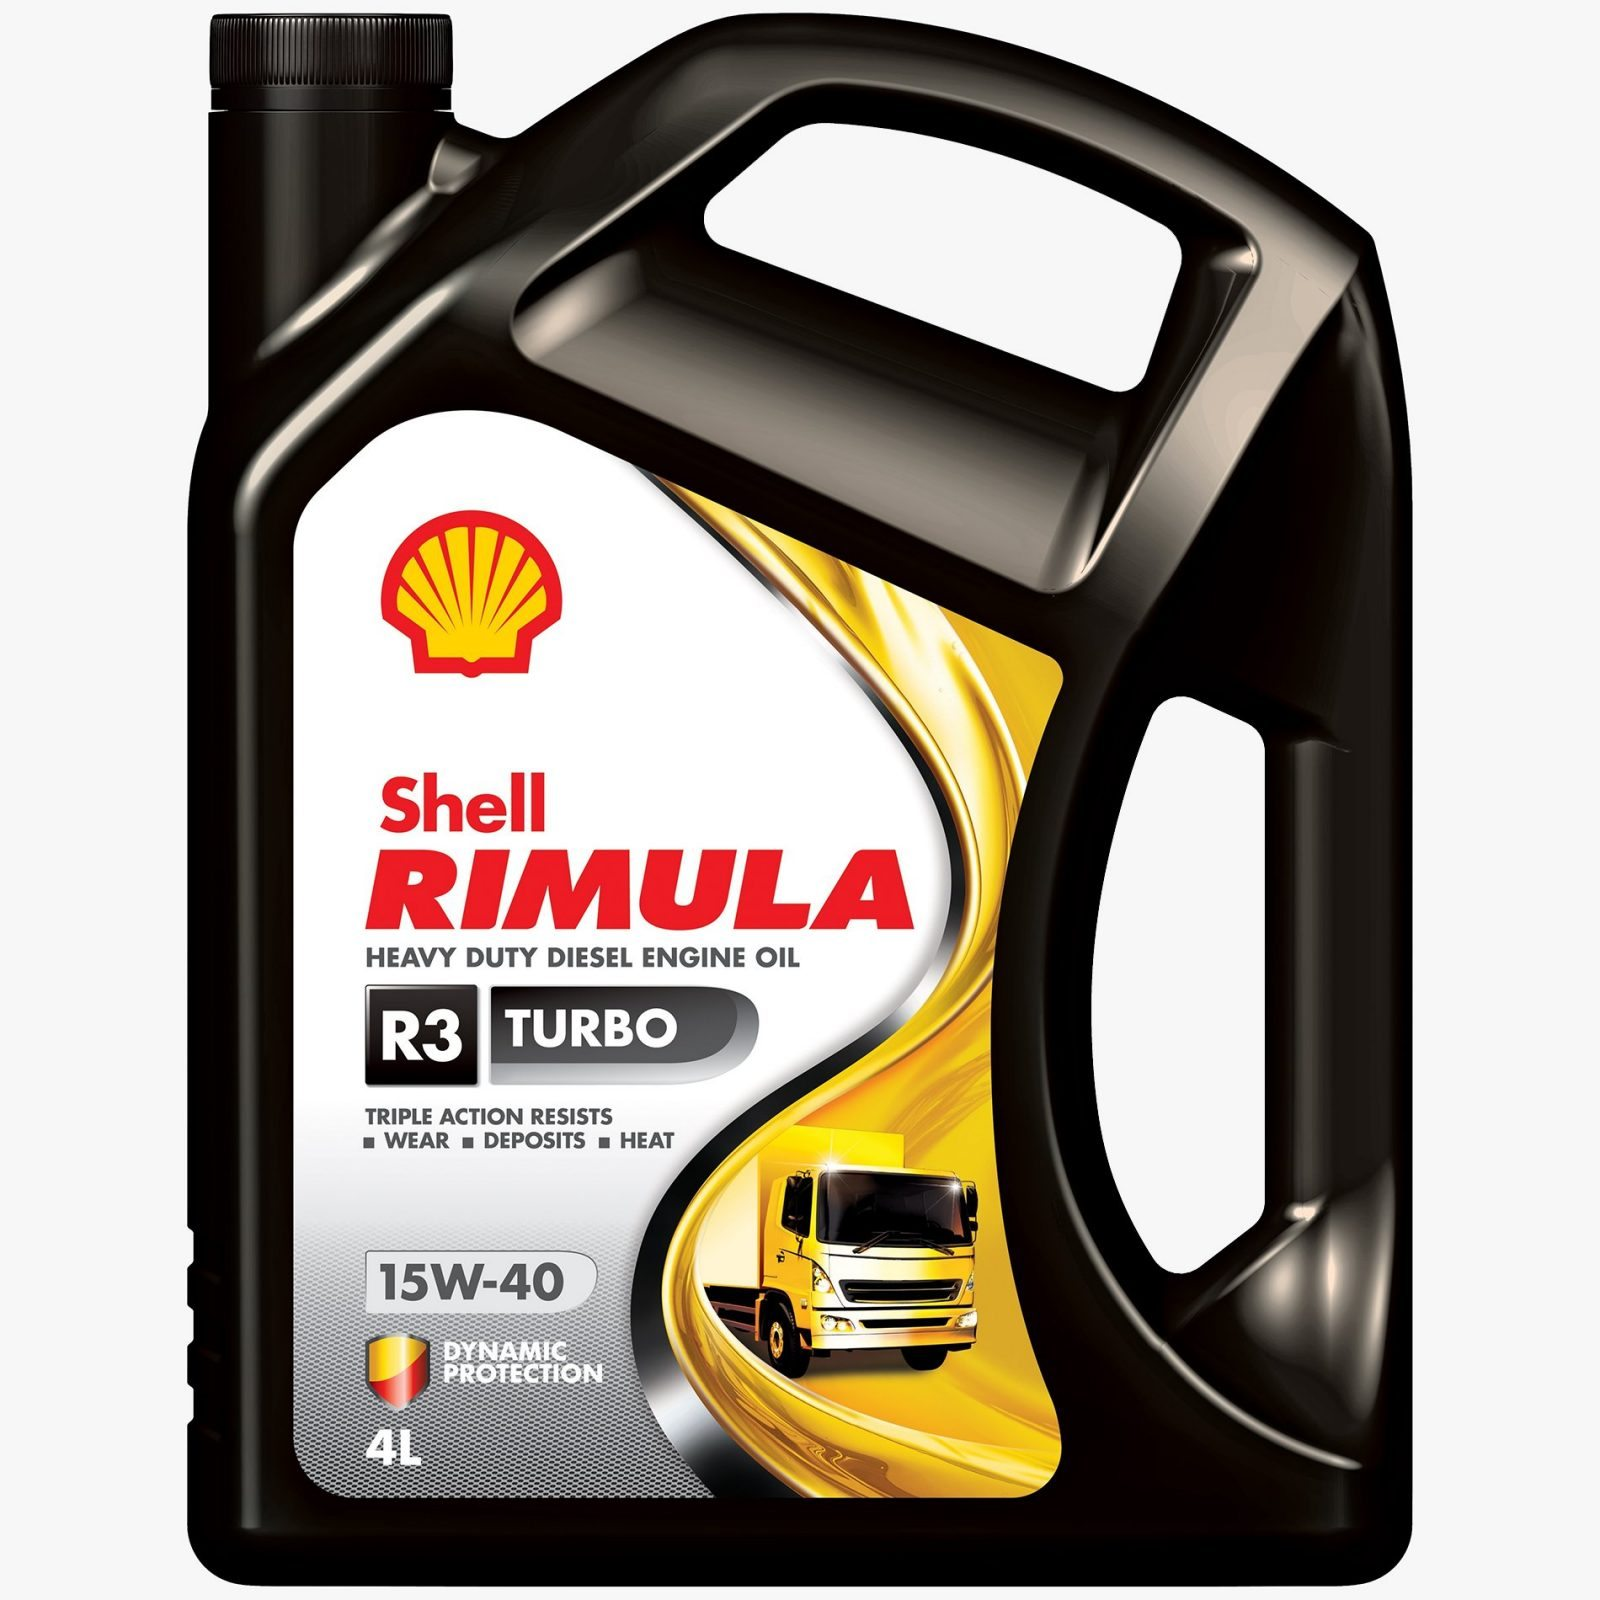 Shell Rimula R3 Turbo